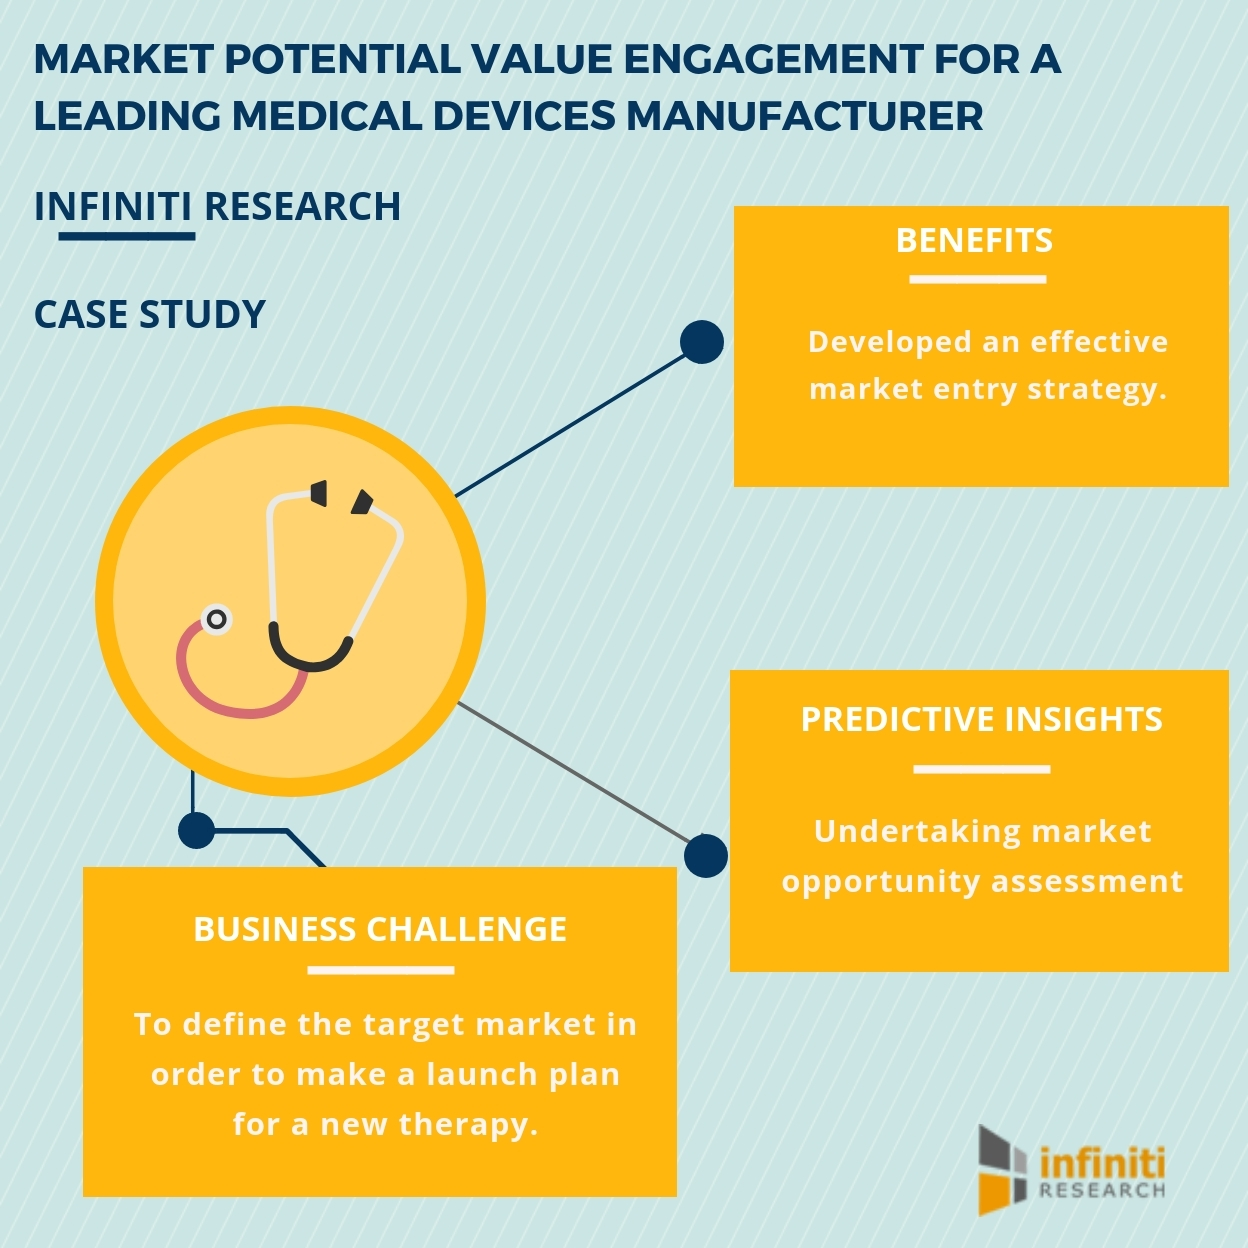 improving the revenue share with the help of infiniti research s